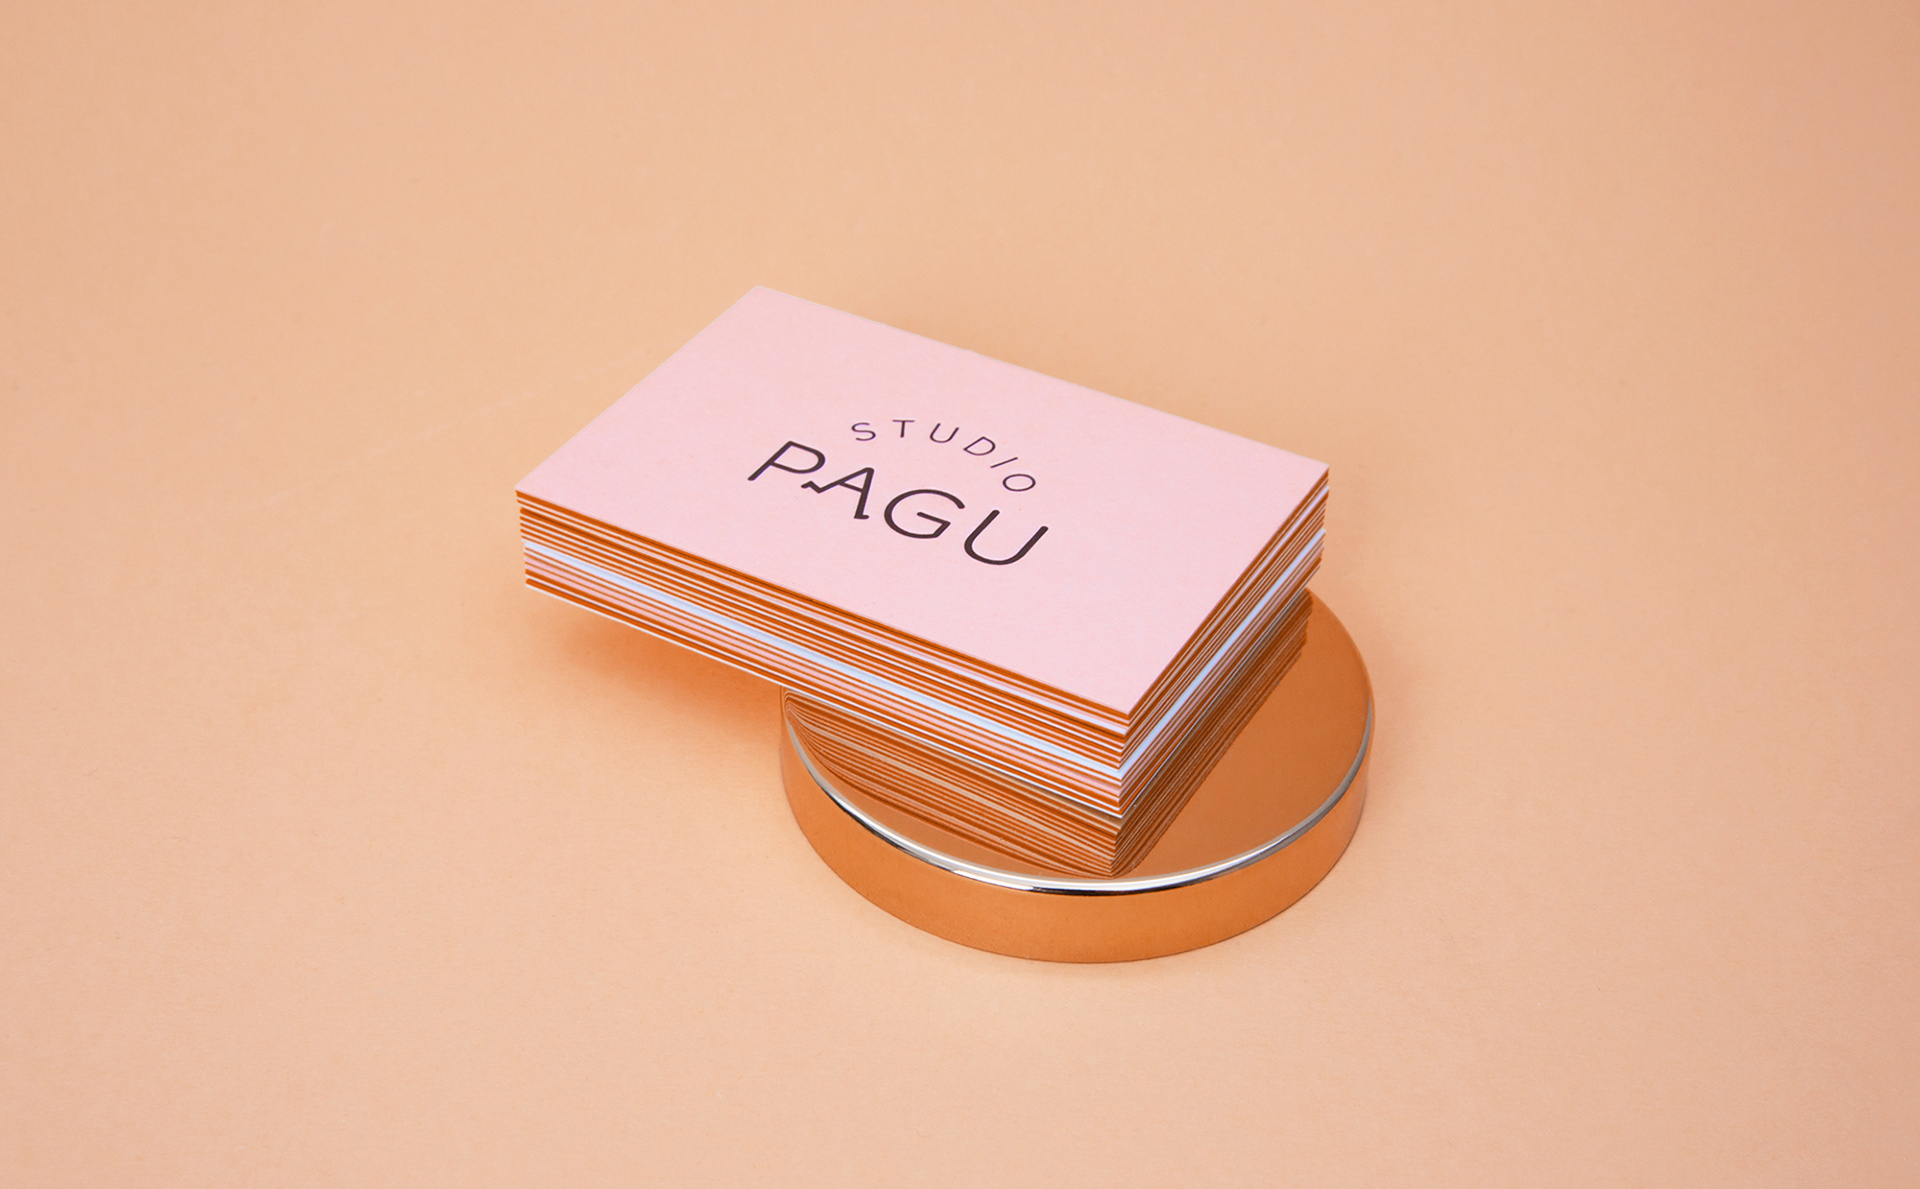 PAGU Studio business card_orange